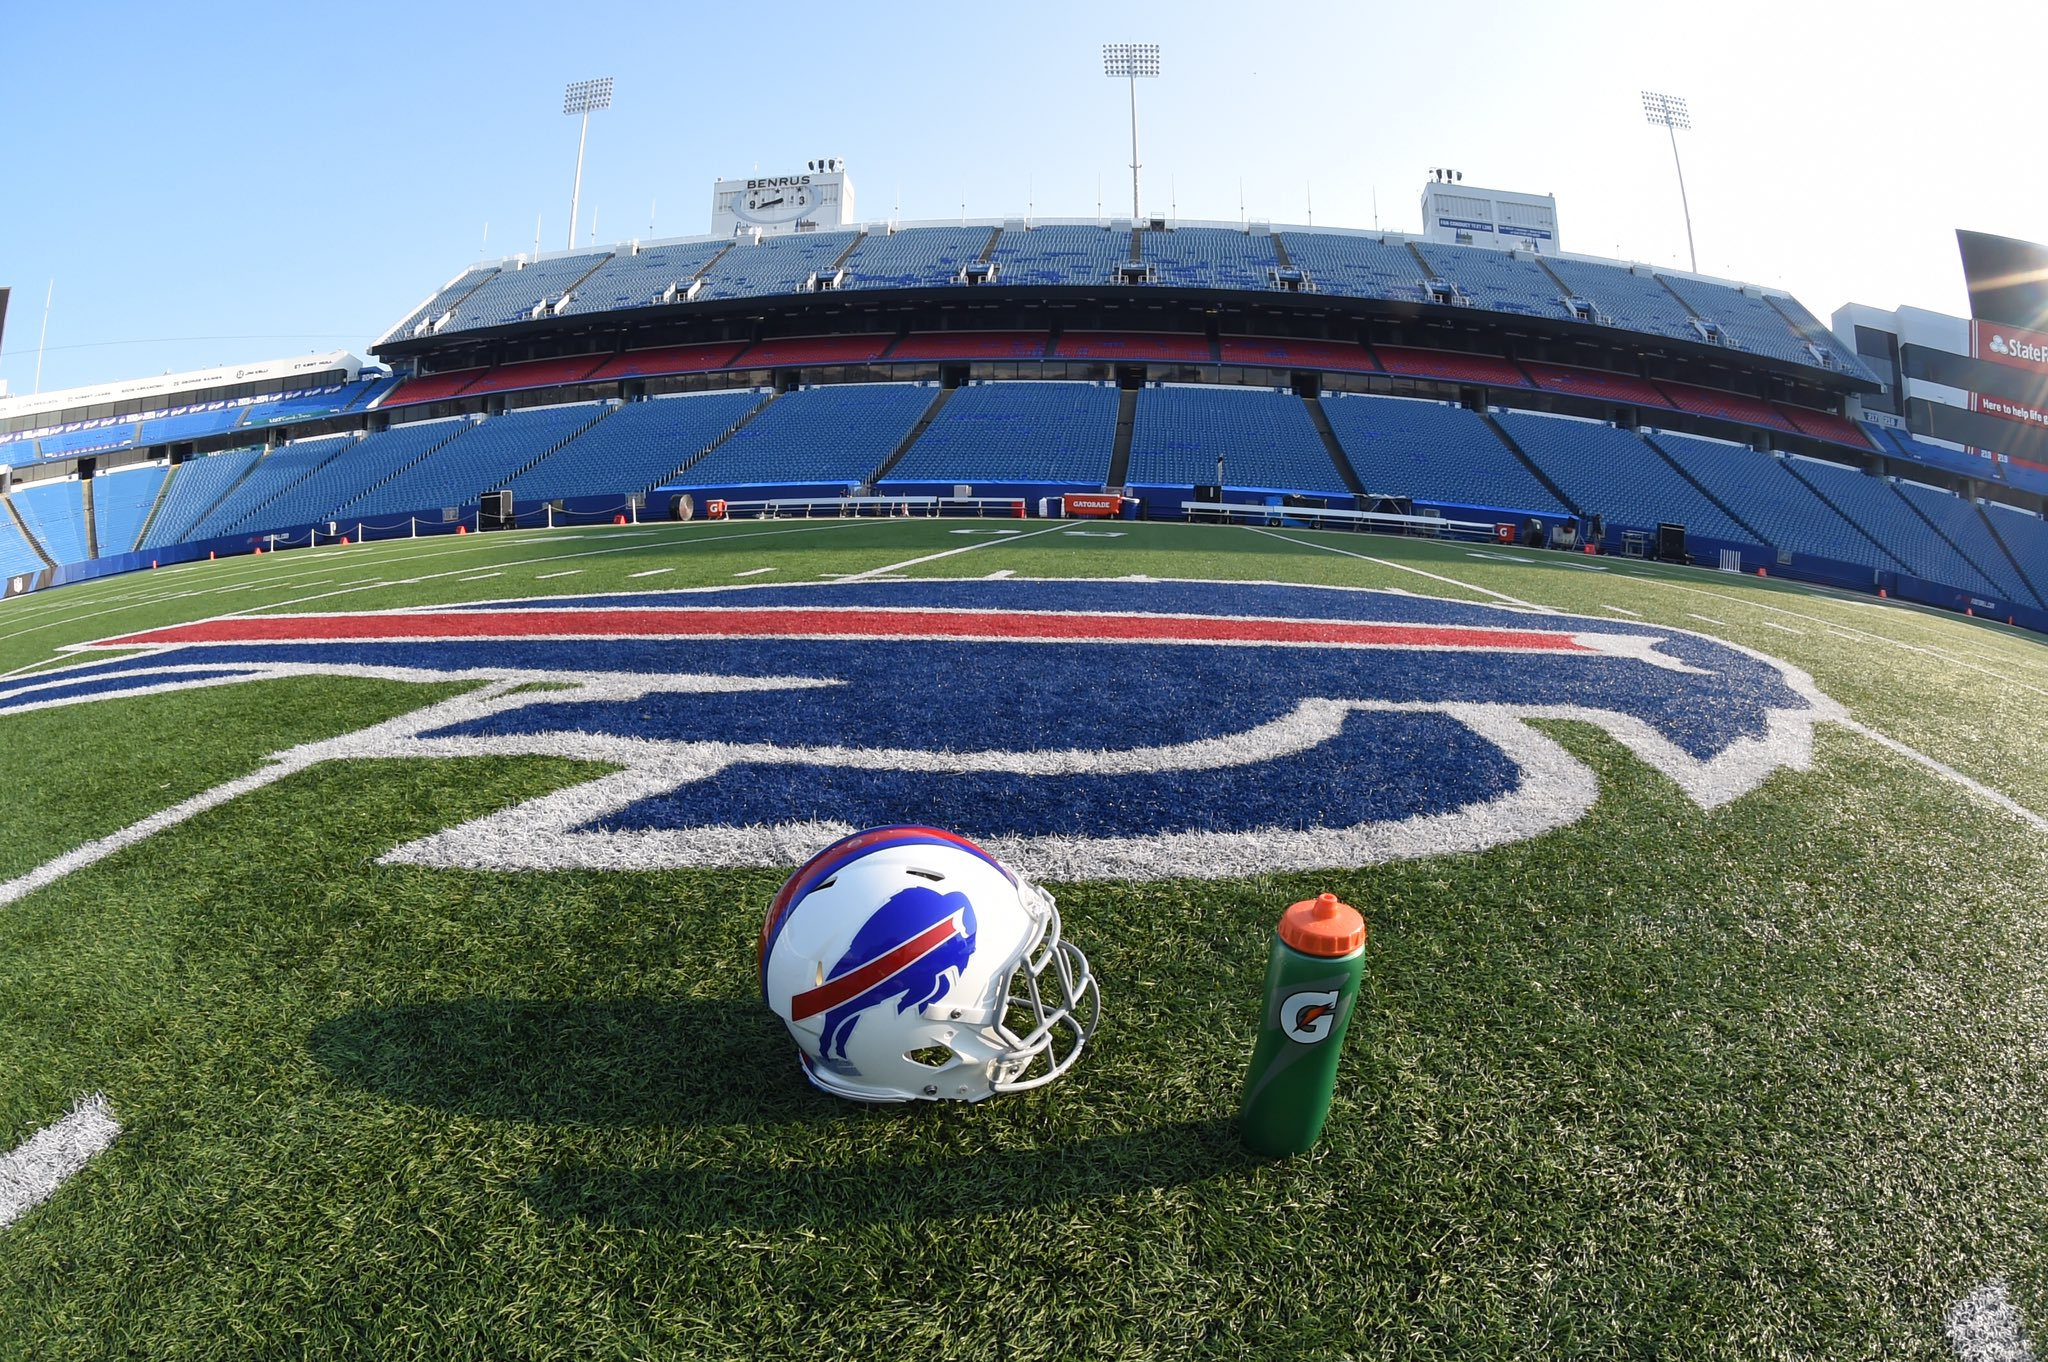 Football is in the air.  #WinFromWithin #GoBills https://t.co/lm5Q0HeLve